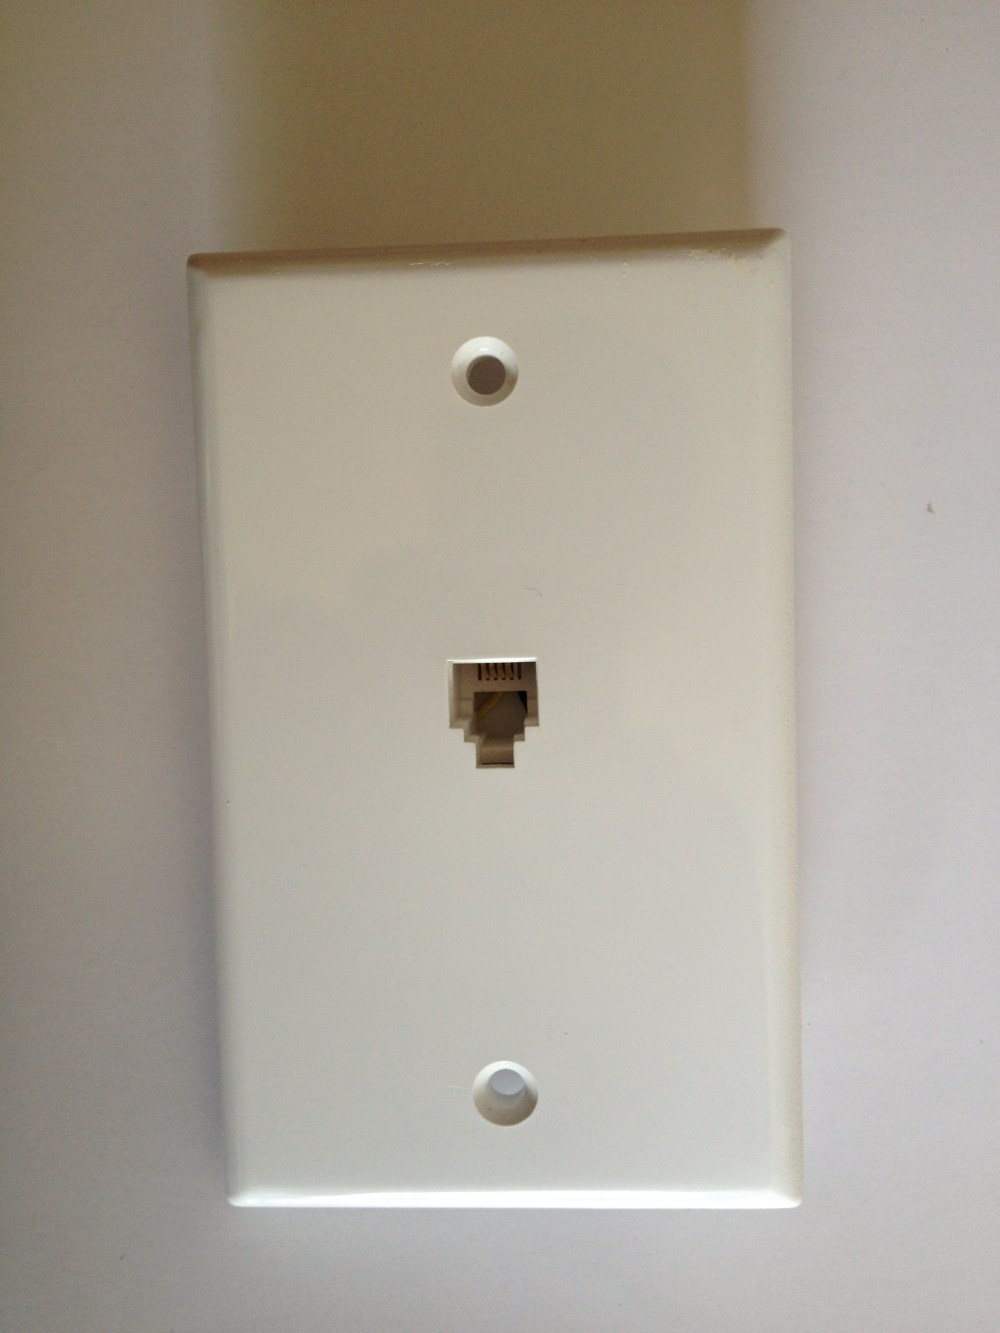 medium resolution of once removed from the wall you ll see which twisted pair of copper wire are connected to the jack of the wall plate there are two standards of wiring